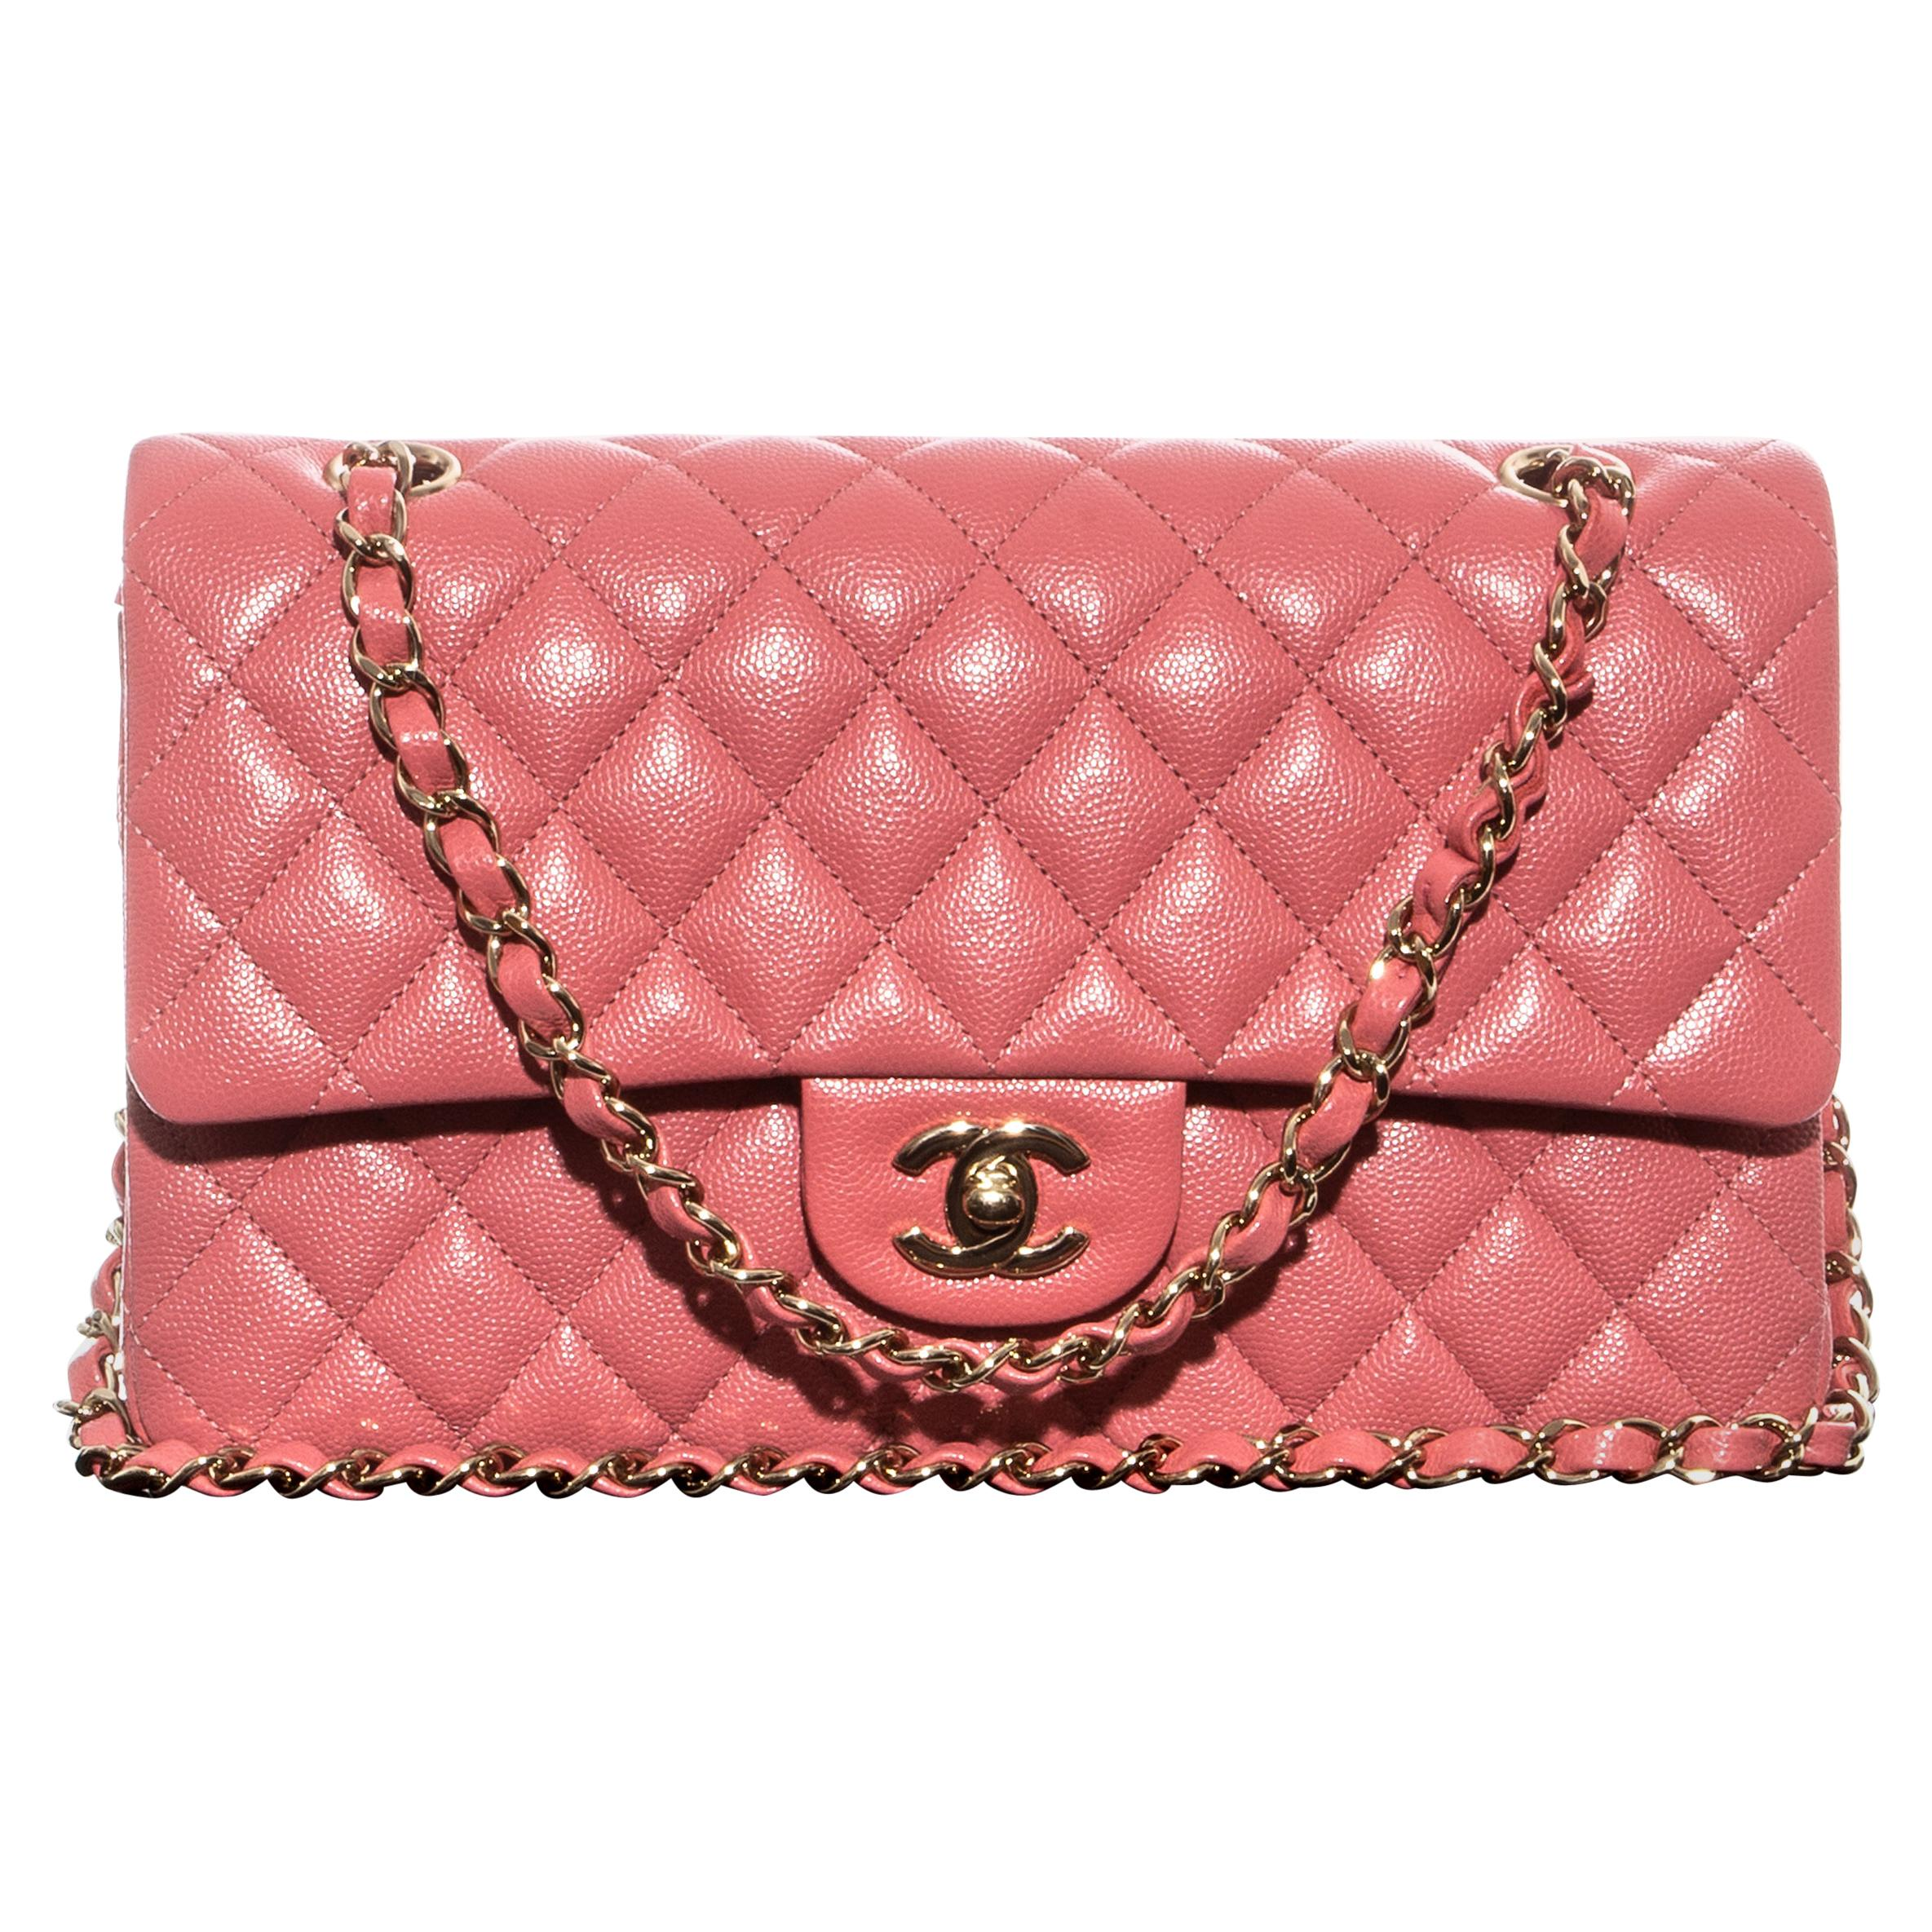 Chanel pink caviar leather classic 2.55 flap bag with gold chain